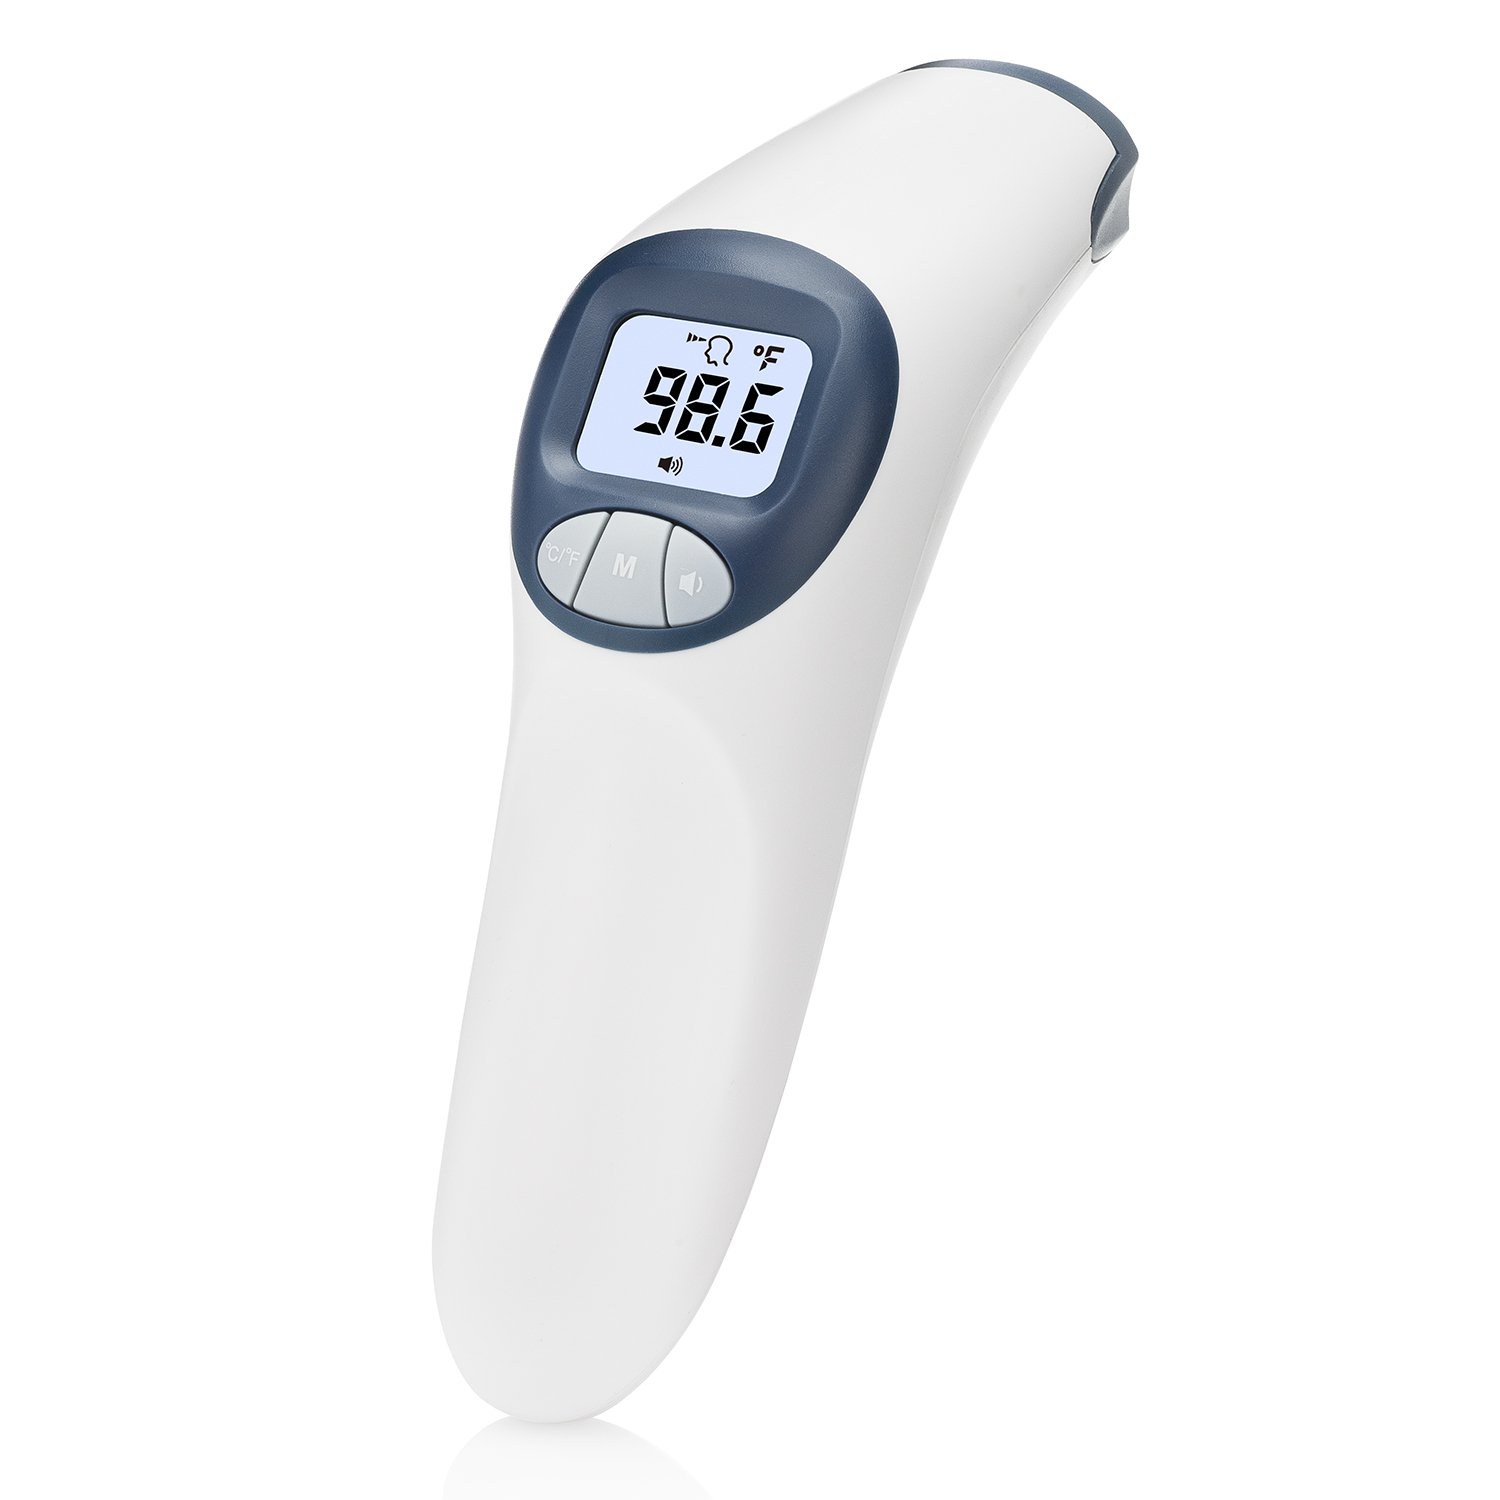 MeasuPro Digital Non-Contact Forehead Thermometer for Babies, Toddlers, and Adults, Fever Alert, No Contact Infrared Instant Temperature, CE and FDA Approved